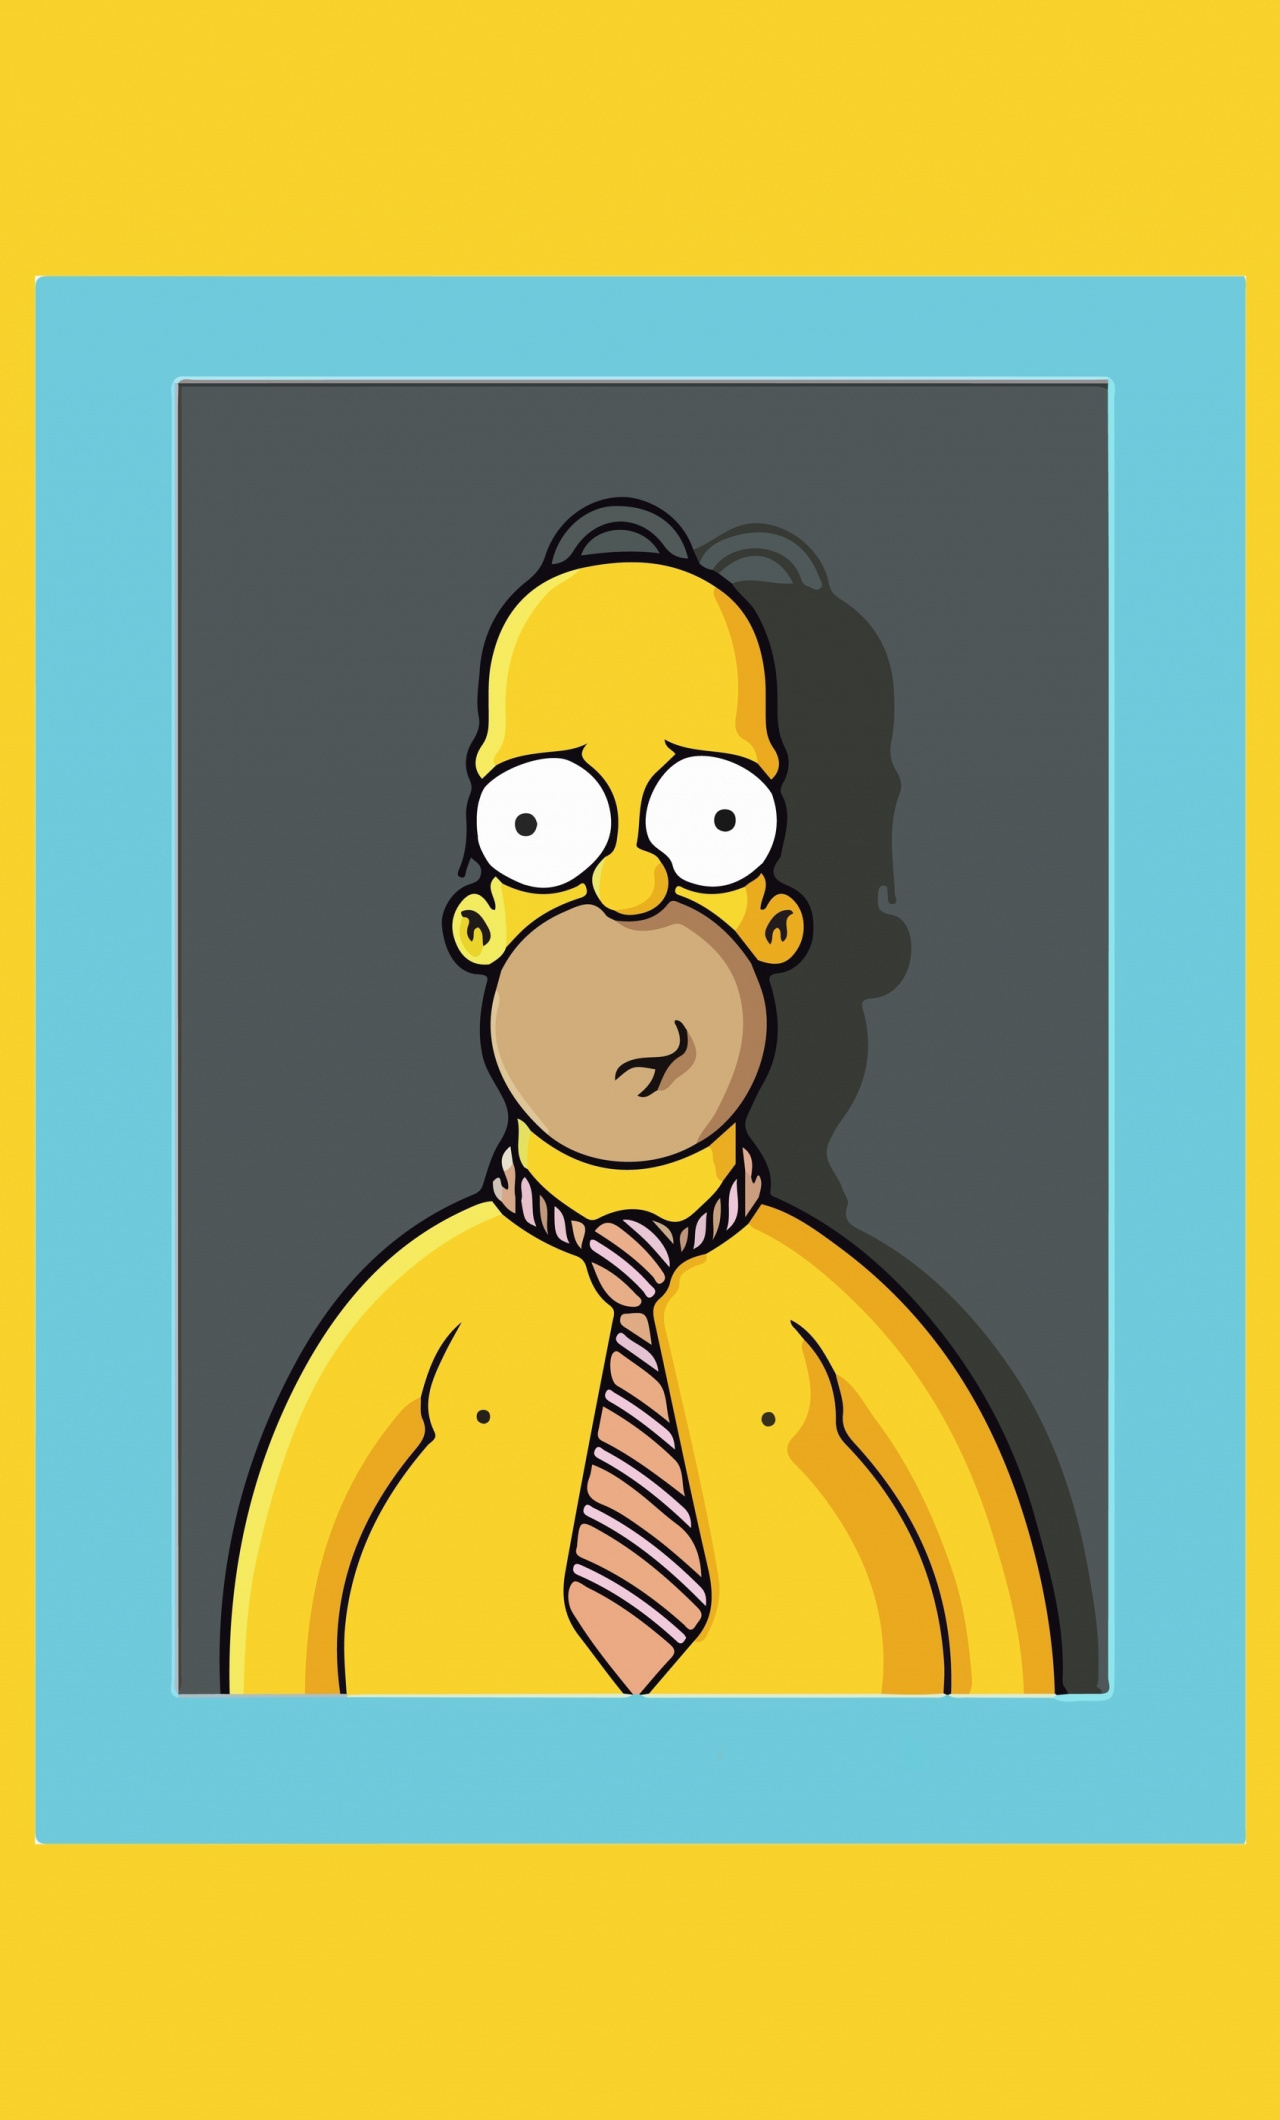 Homer Simpson, Photo Frame, The Simpsons, Animated - Simpsons Cell Phone Background , HD Wallpaper & Backgrounds